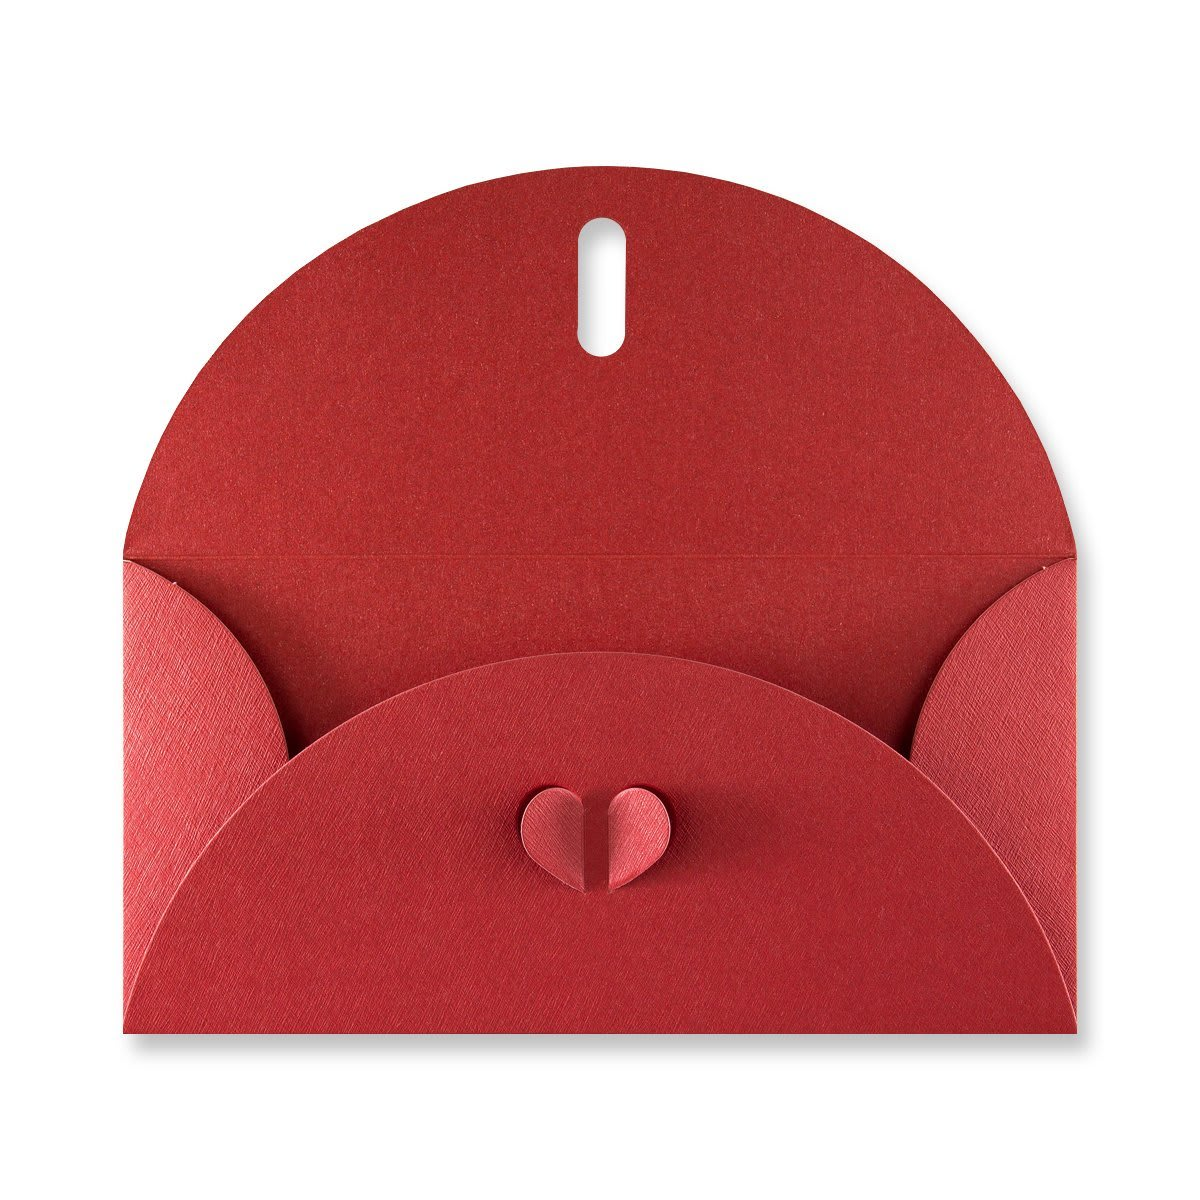 DL CARDINAL RED BUTTERFLY ENVELOPES